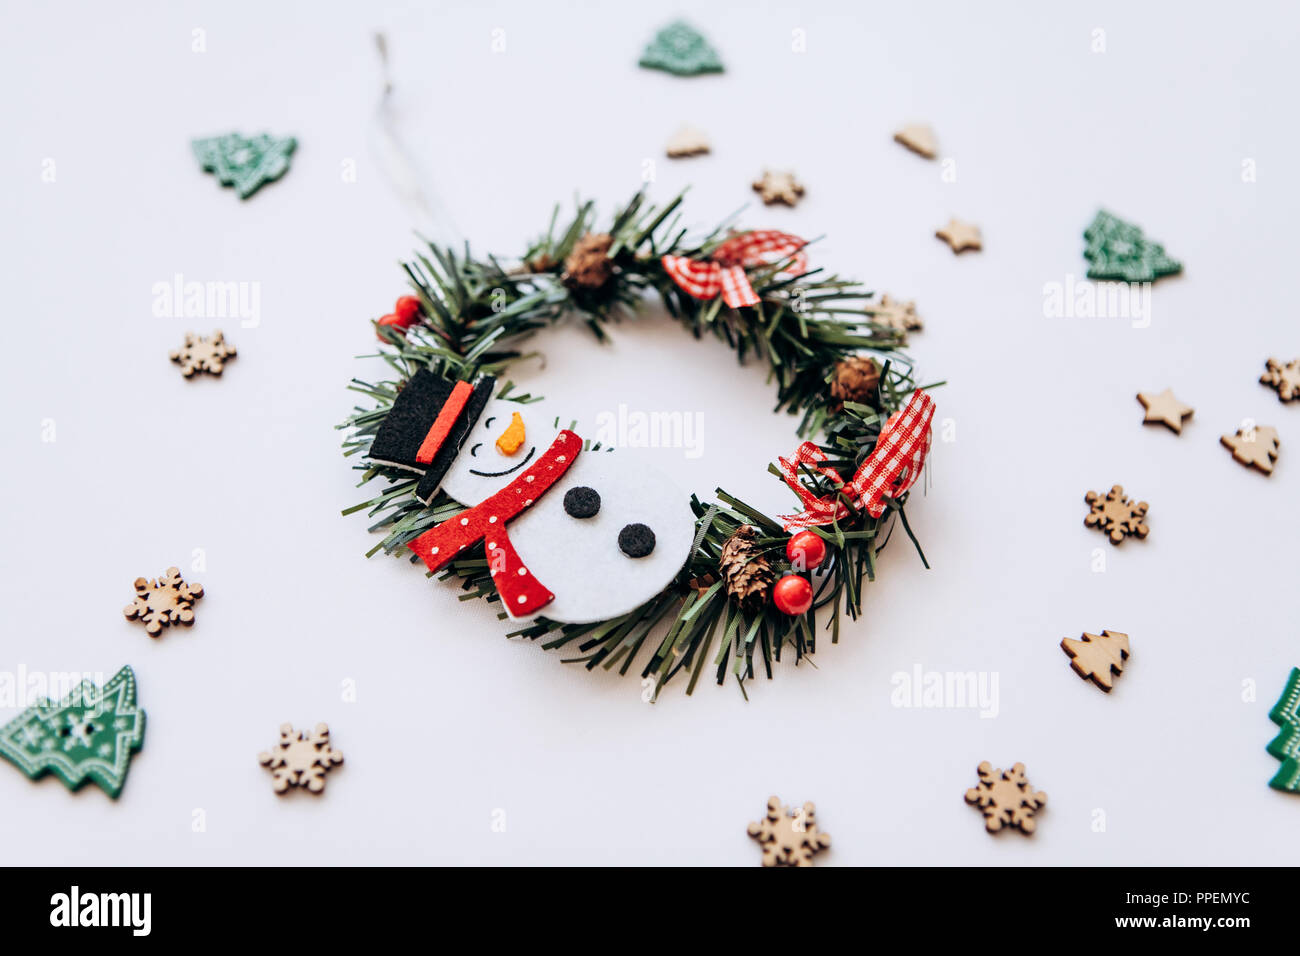 Christmas wreath with snowman Christmas tree toy on white background ...